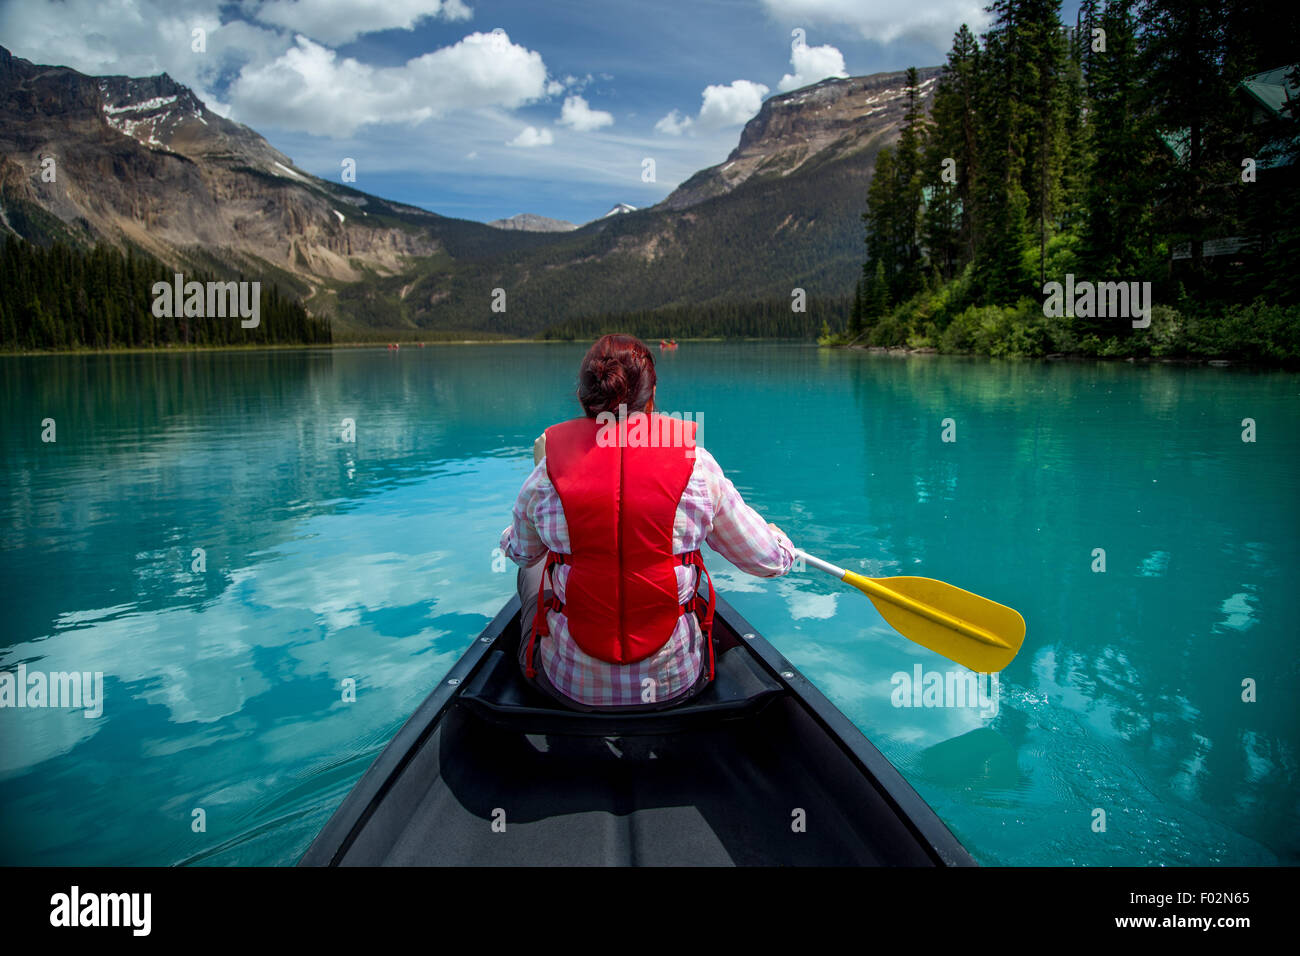 Woman canoeing in Emerald Lake, Yoho National Park, British Columbia Canada - Stock Image